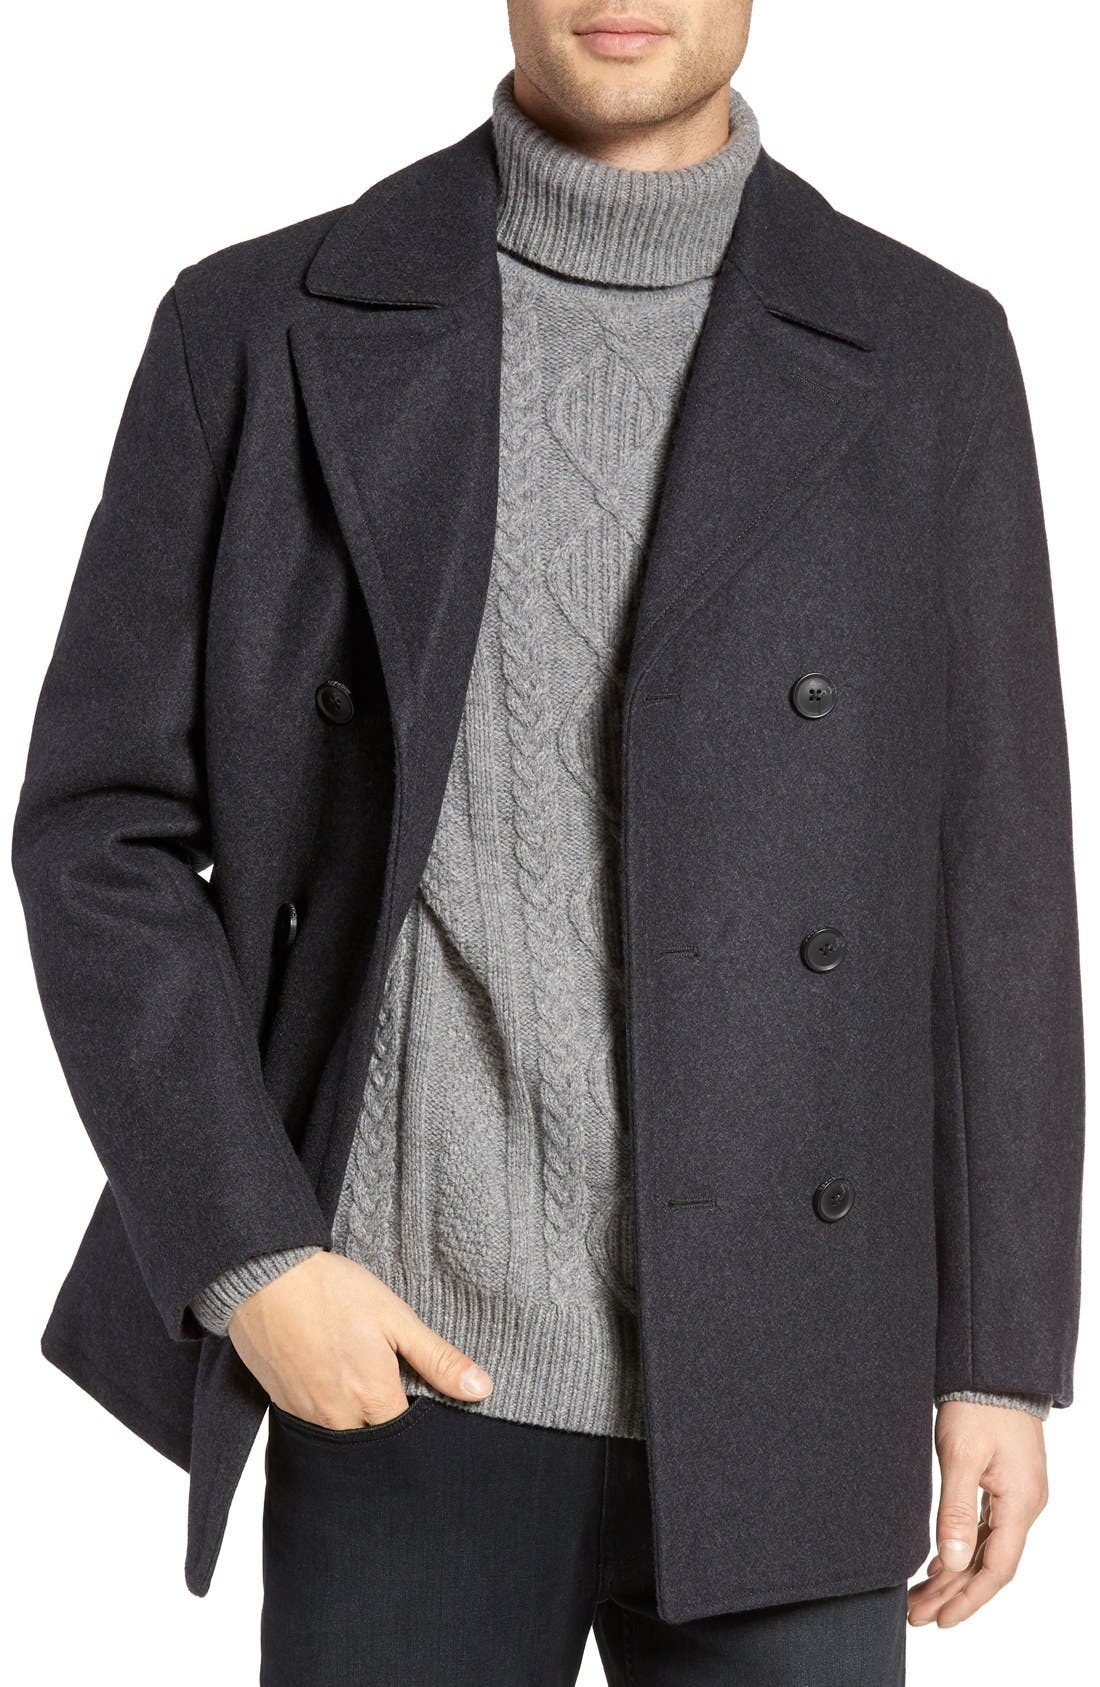 Wool Blend Double Breasted Peacoat,                             Main thumbnail 10, color,